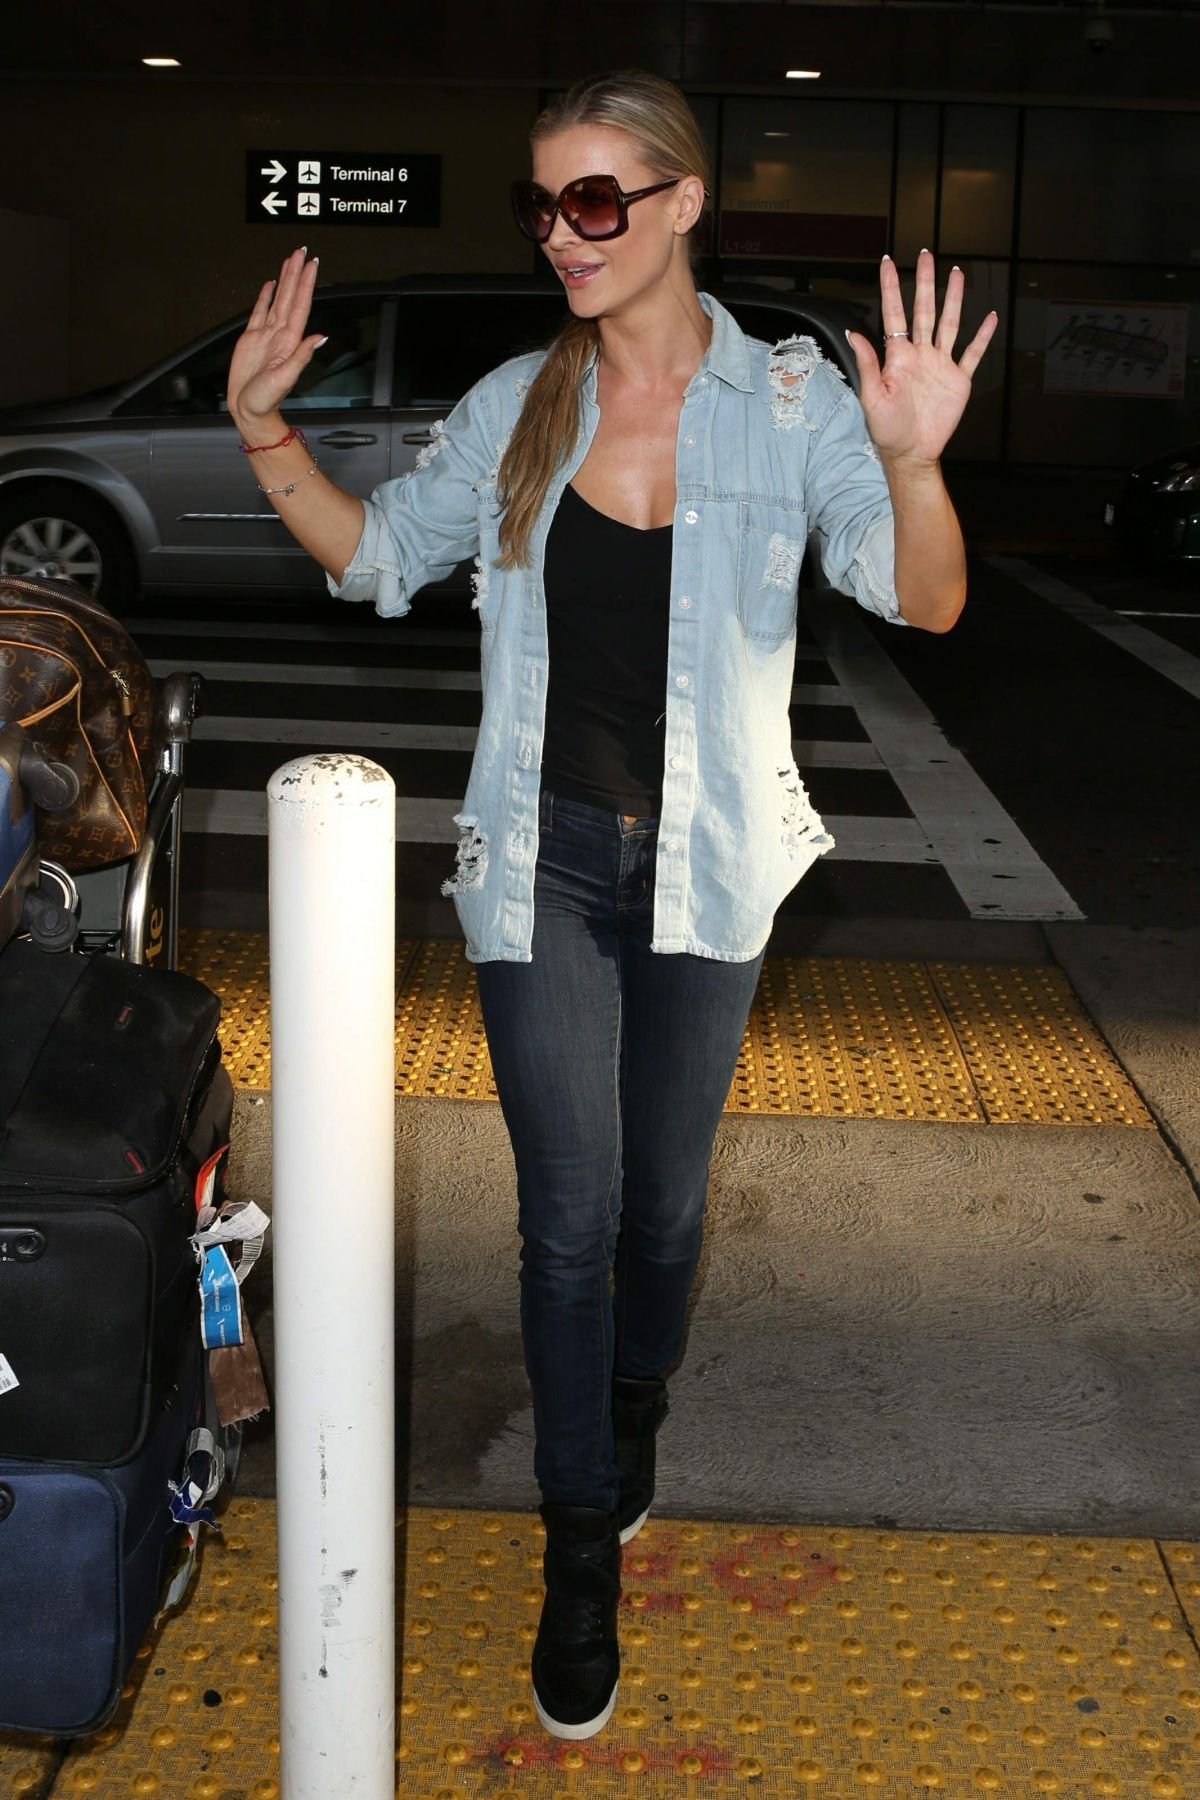 Joanna Krupa At LAX International Airport, Los Angeles   joanna-krupa-at-lax-international-airport-los-angeles_11